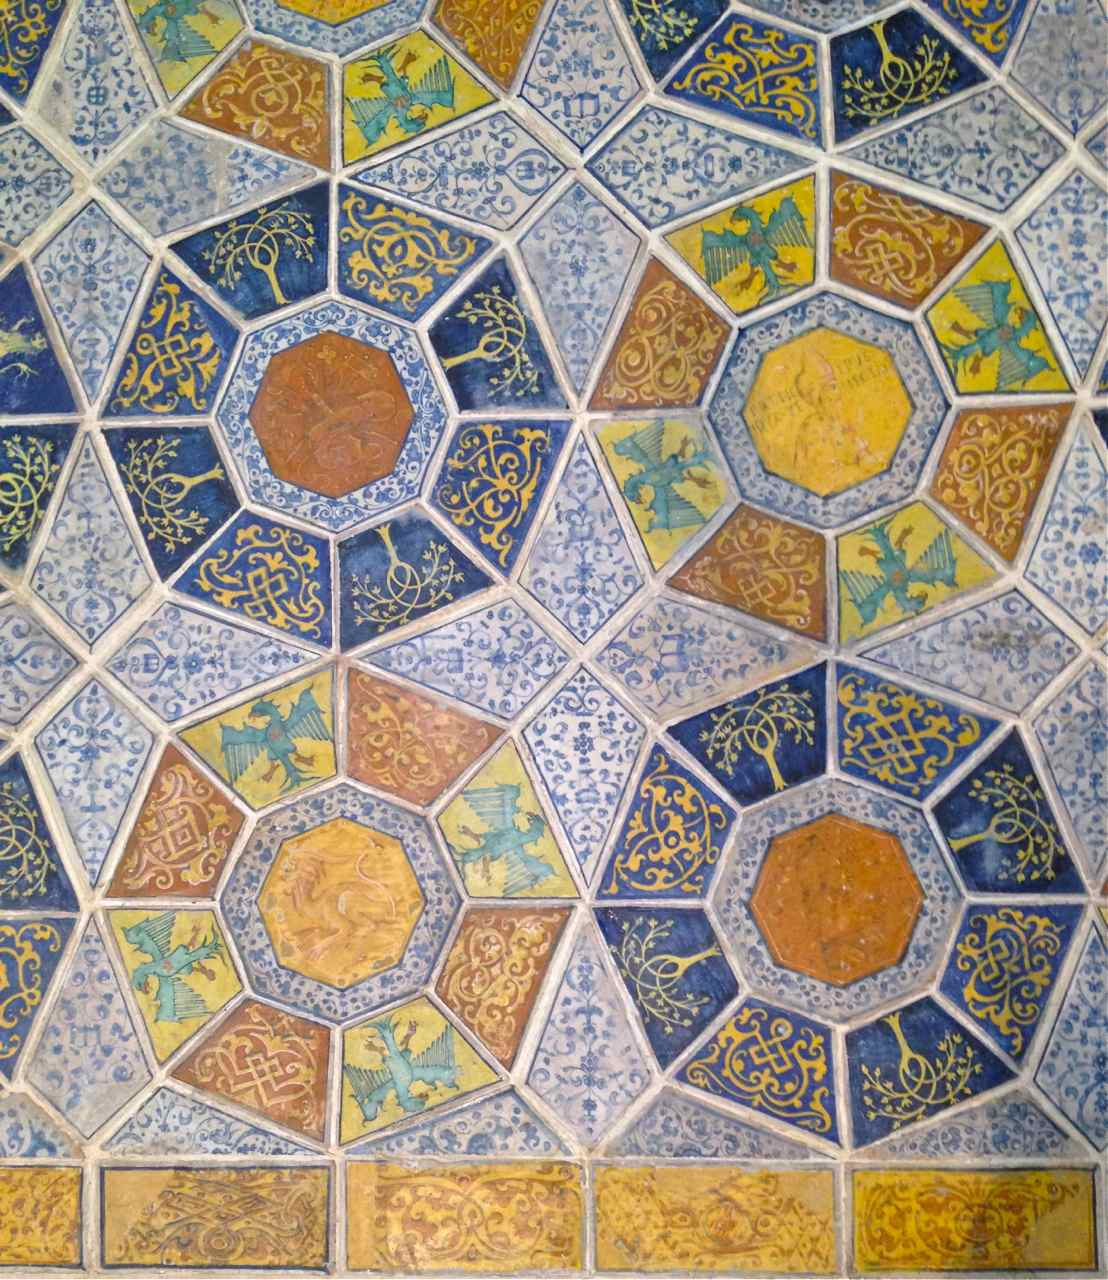 Octagonal Italian Tile, 1513, at the V&A Museum, London